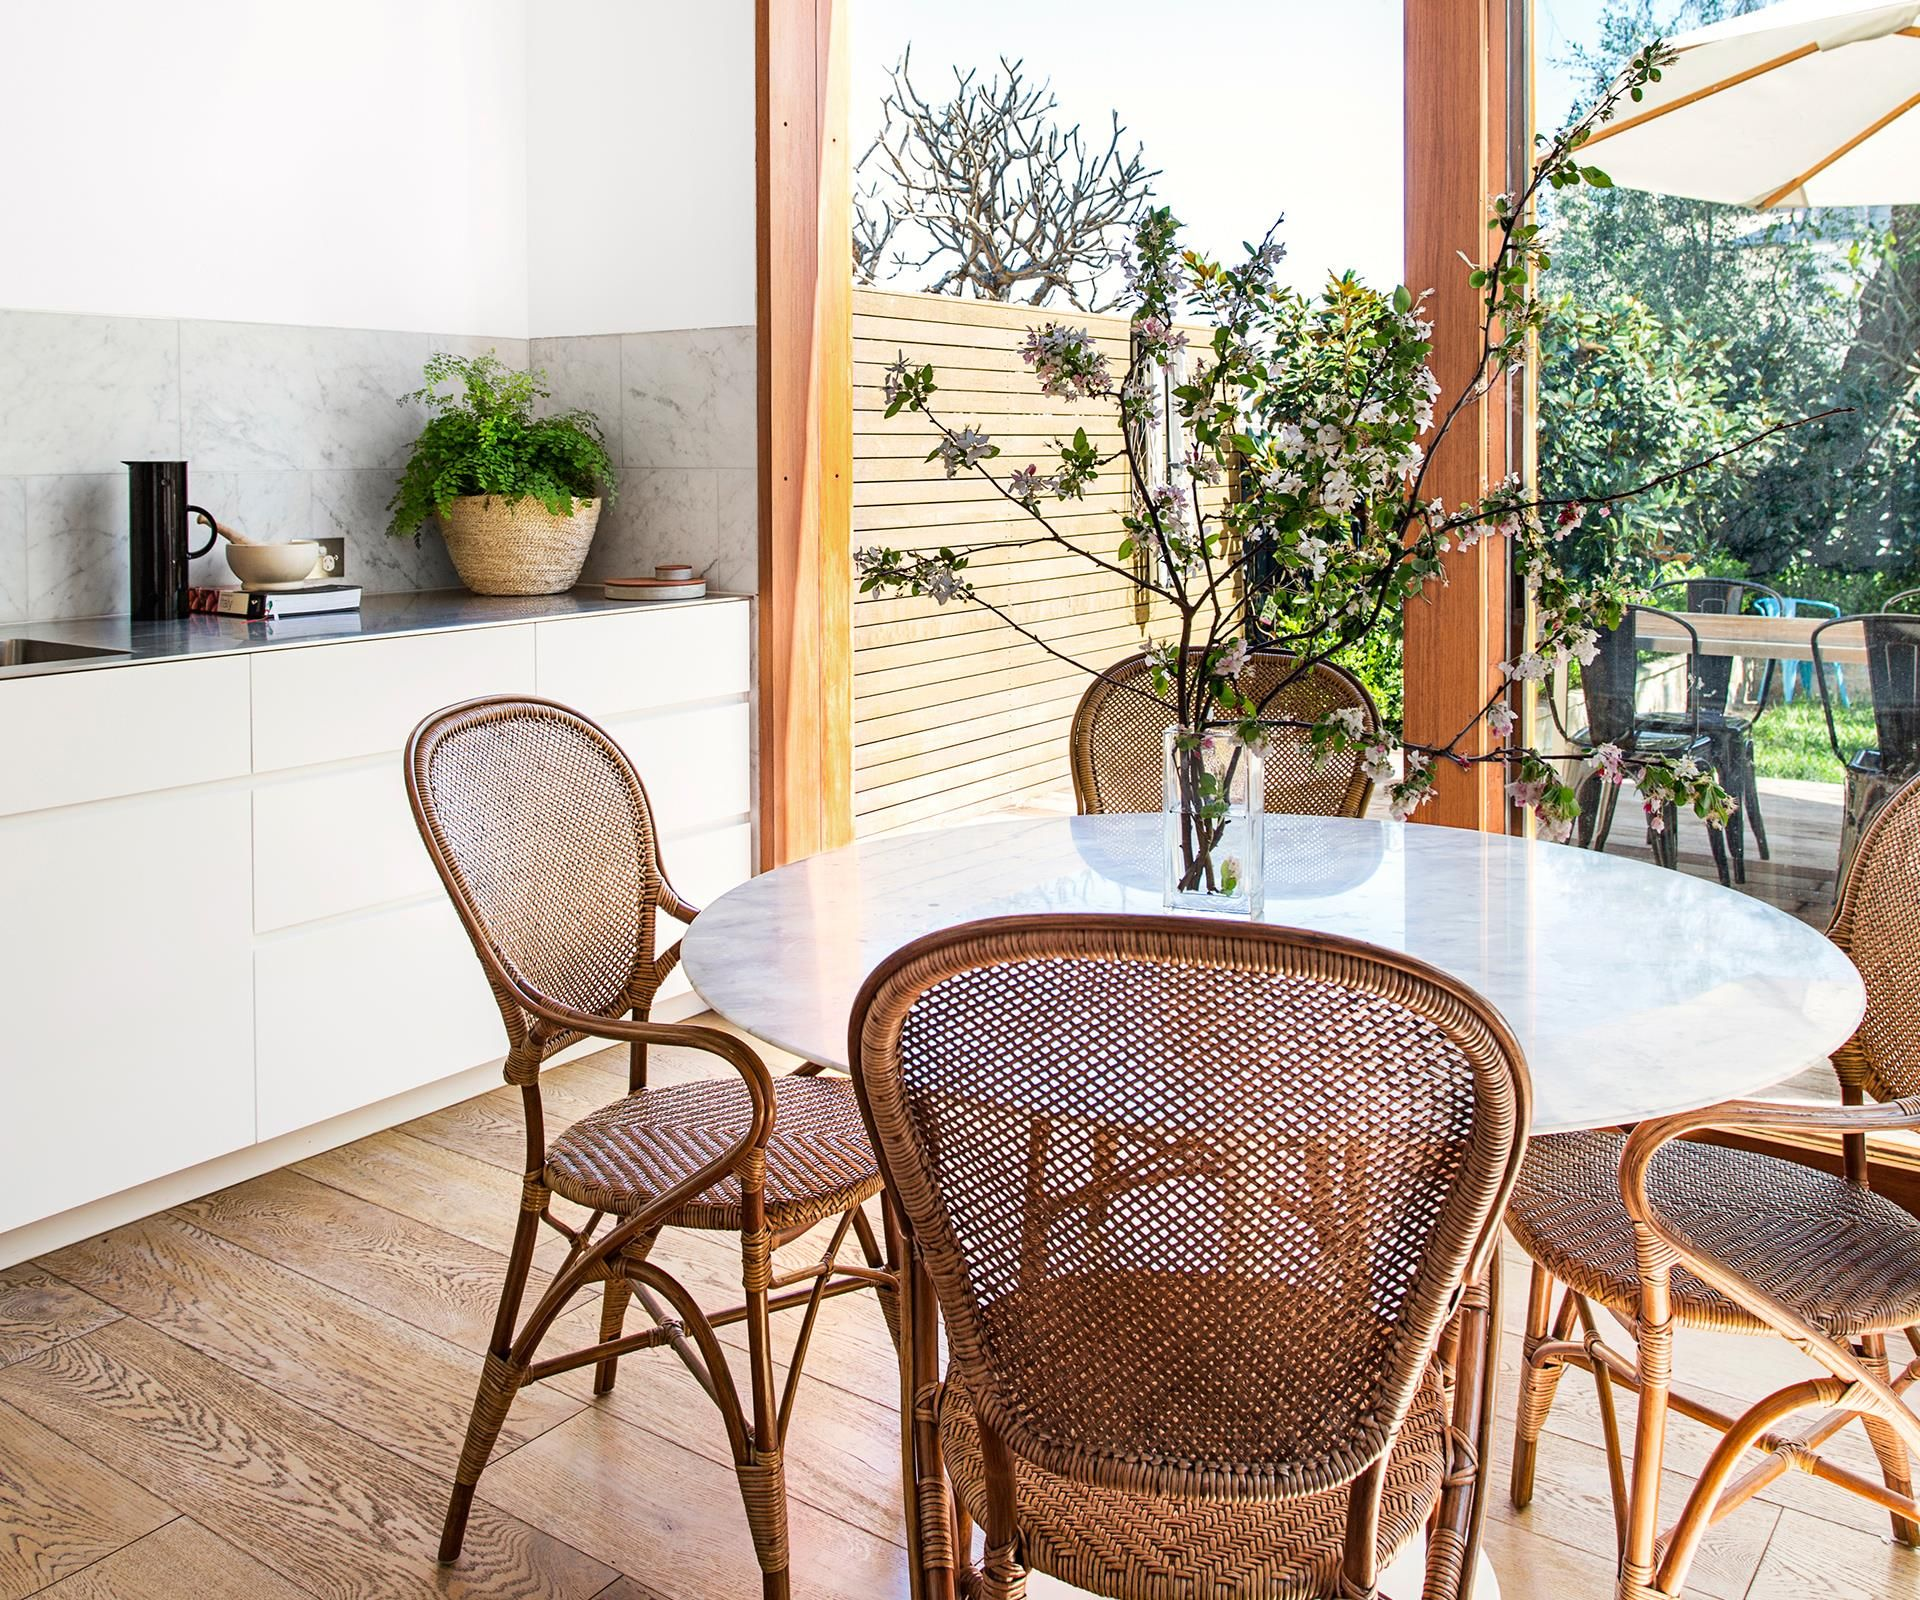 Dining Room Corner Decorating Ideas Space Saving Solutions: 8 Stylish Solutions For Small Spaces